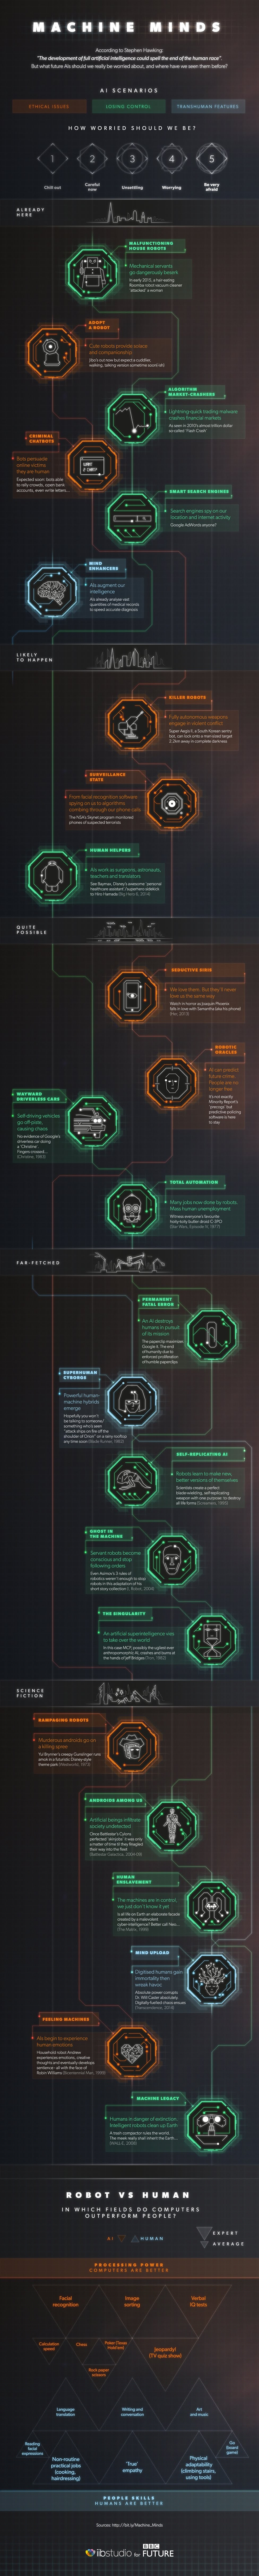 How Worried Should You Be About Artificial Intelligence? #infographic